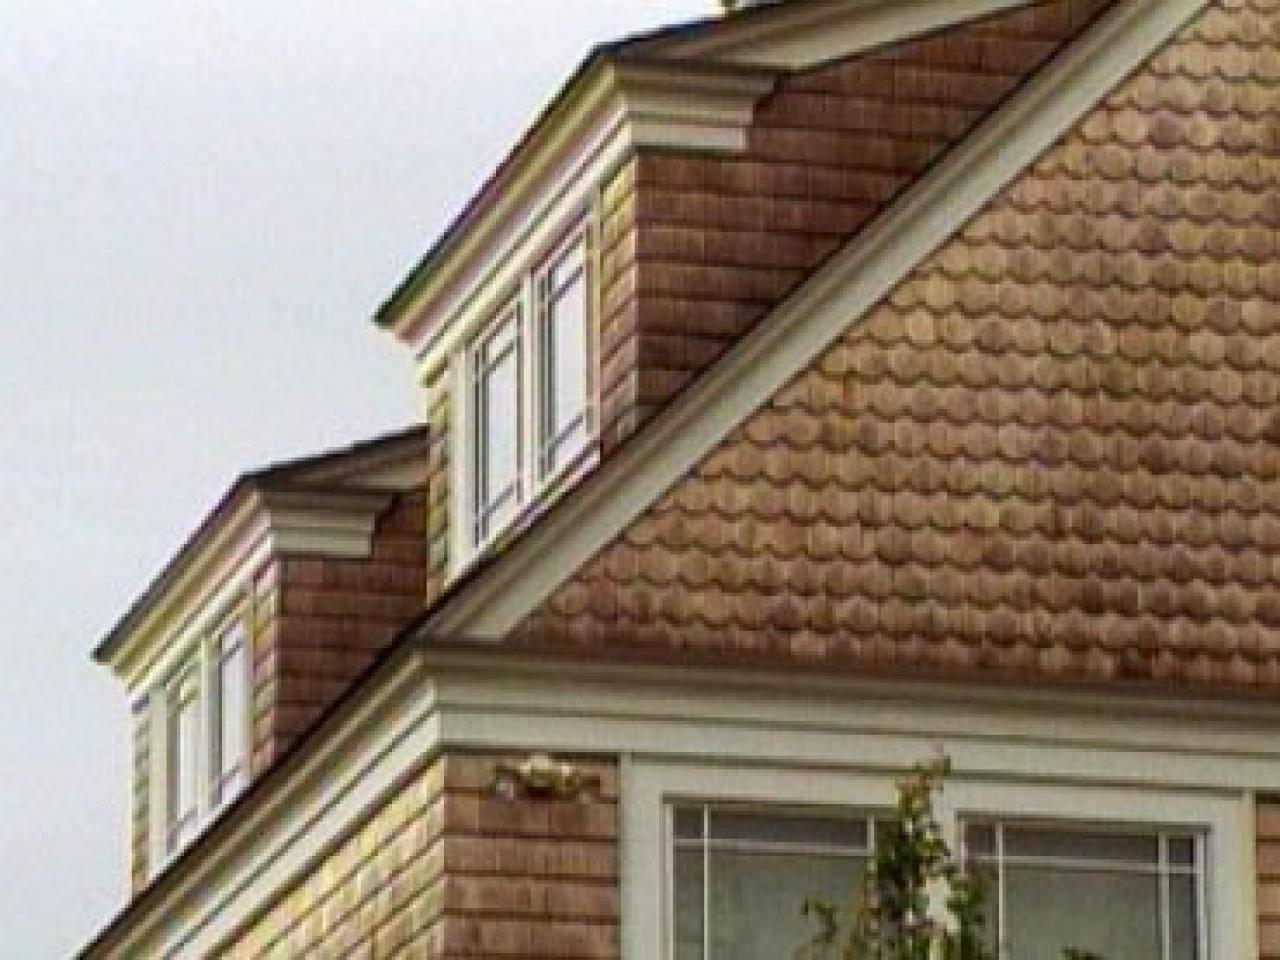 Home Exterior Siding what does your exterior siding and paint look like Related To Siding Planning Exterior Home